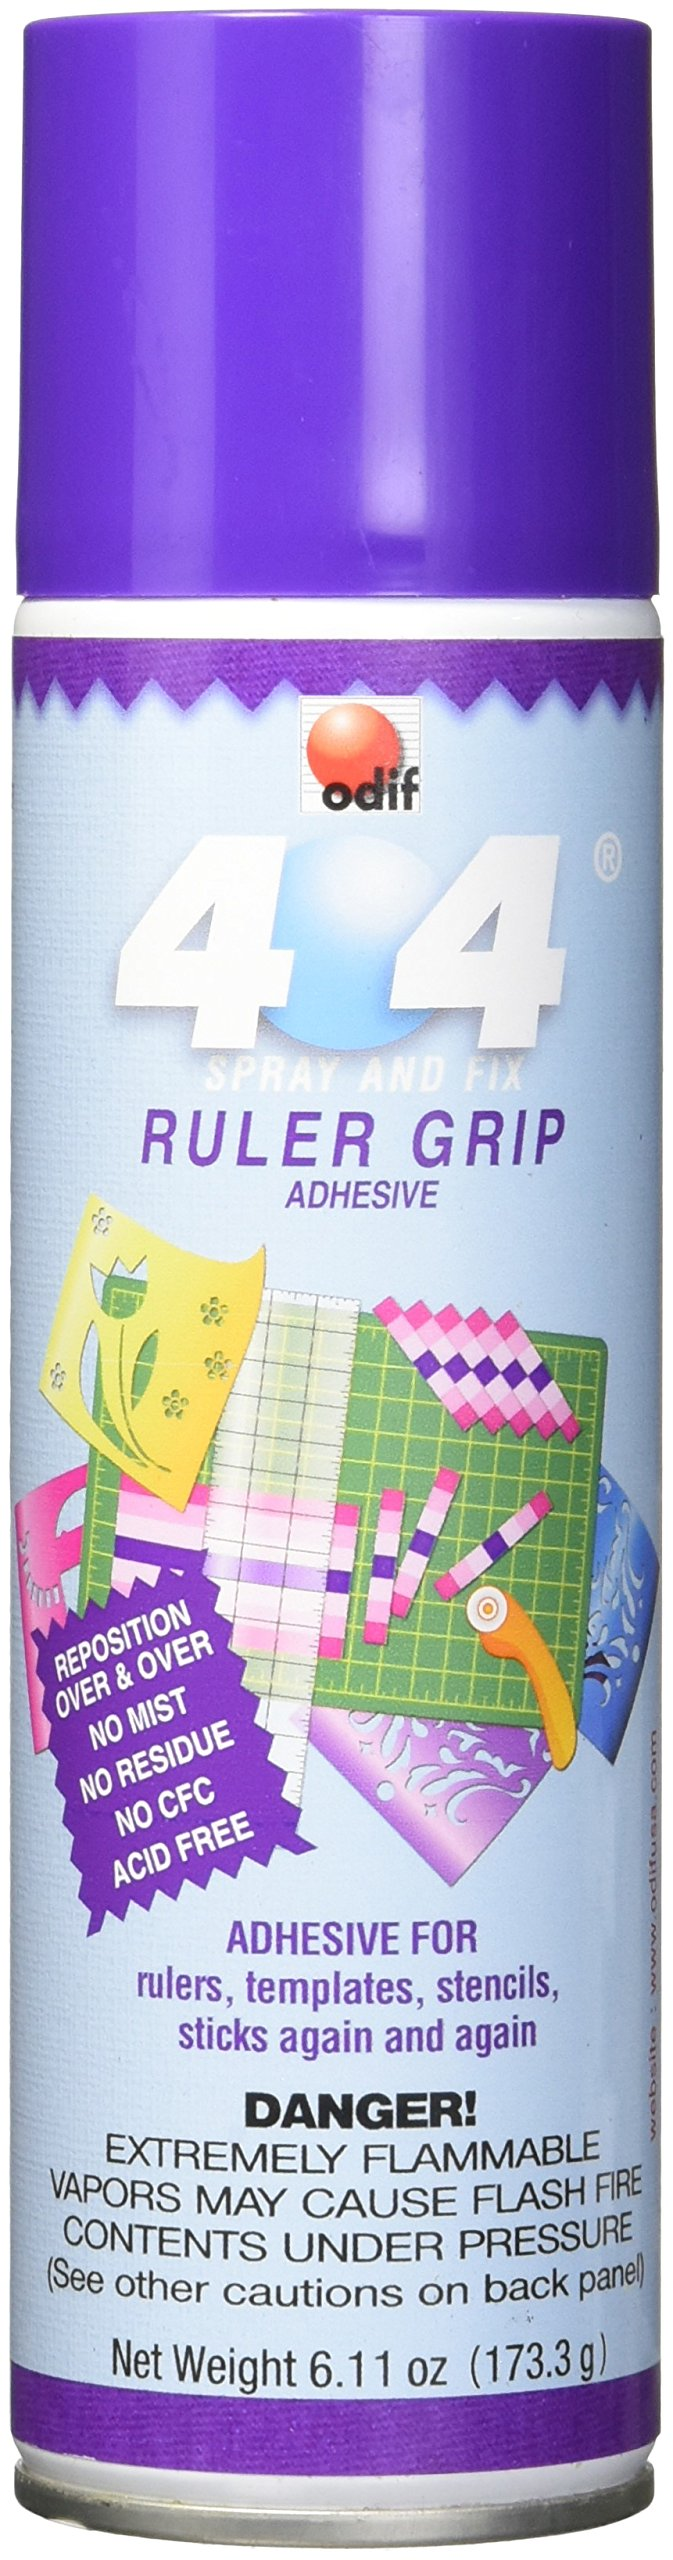 Odif Usa 404 Quilt Ruler Guide Adhesive